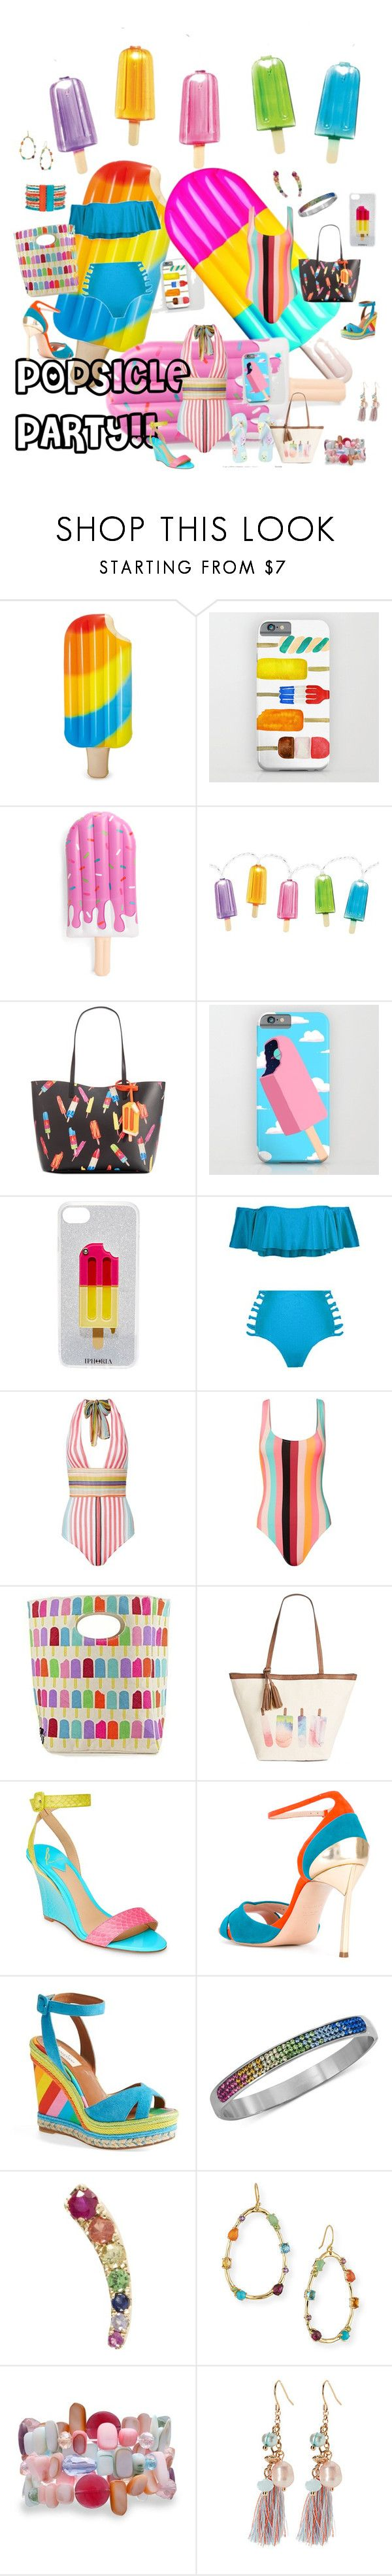 """Popsicle party"" by traceyenorton ❤ liked on Polyvore featuring INC International Concepts, Iphoria, Missoni Mare, Solid & Striped, Style & Co., B Brian Atwood, Casadei, Valentino, Loquet and Ippolita"